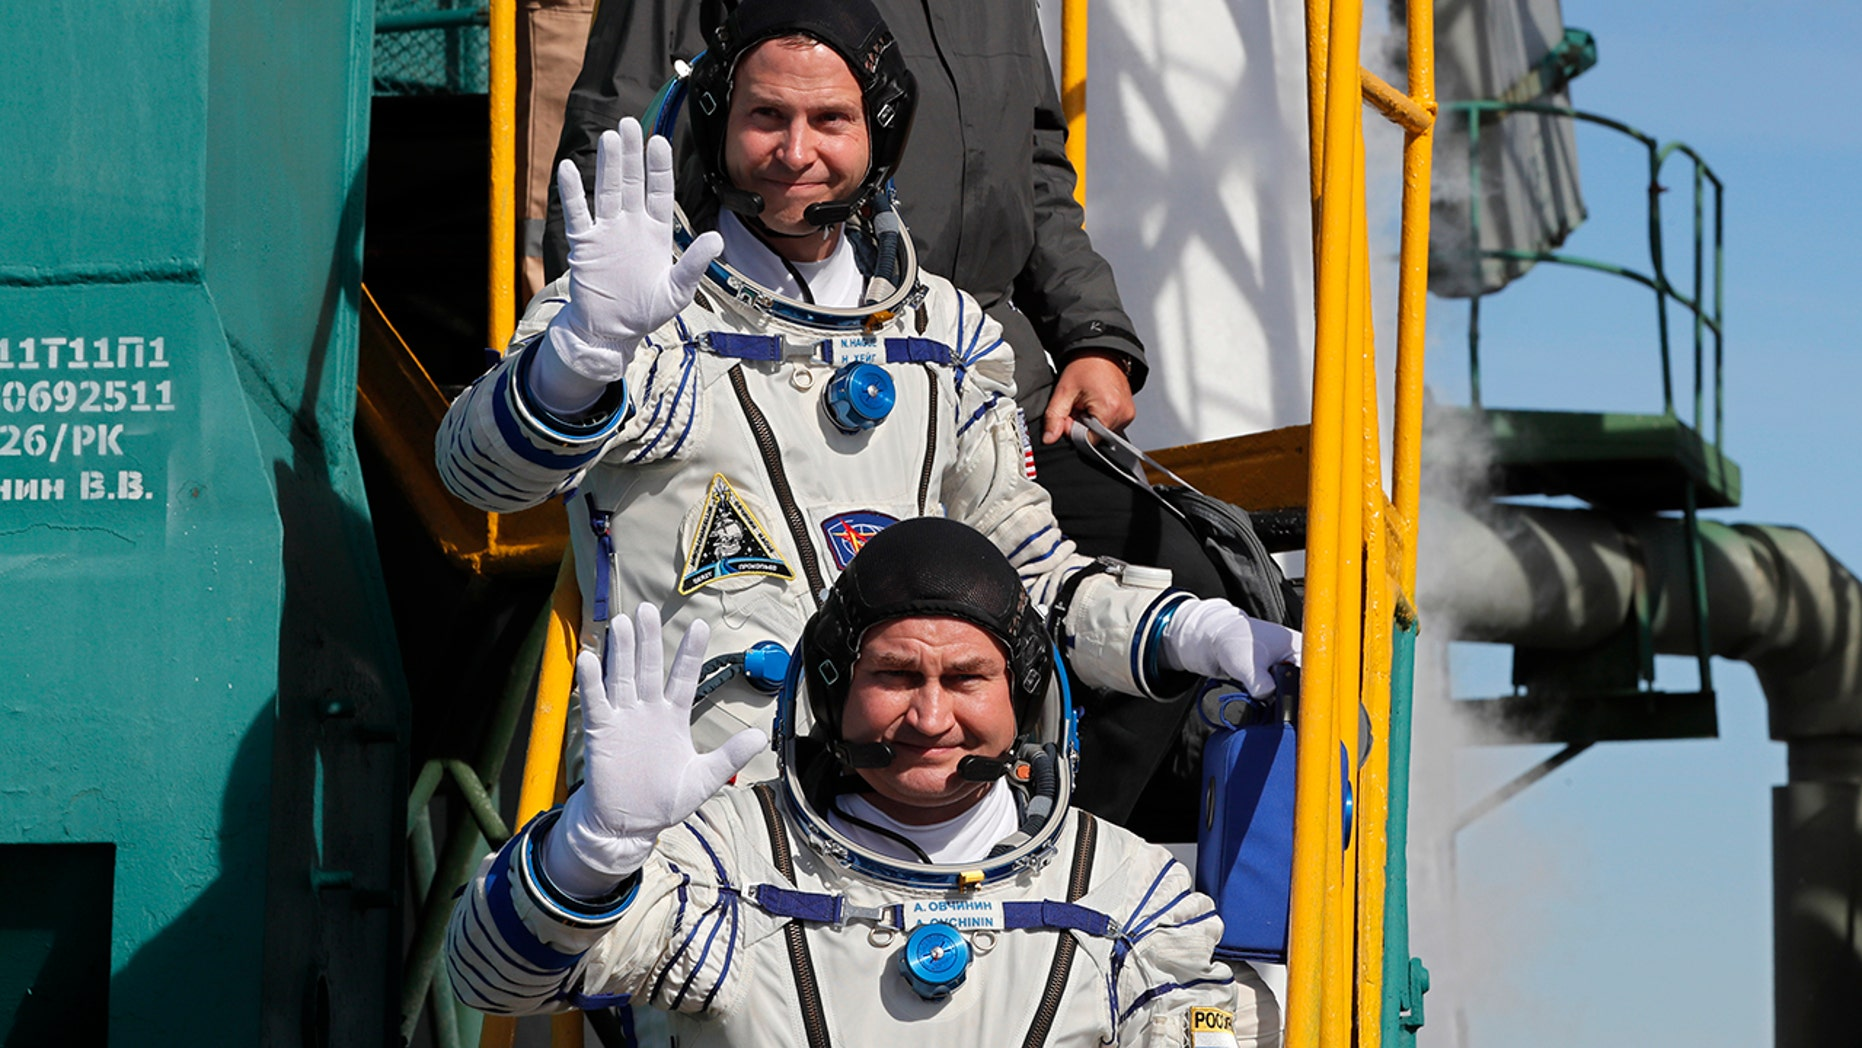 Cosmonaut Ovchinin to continue work in Star City after Soyuz-FG failure